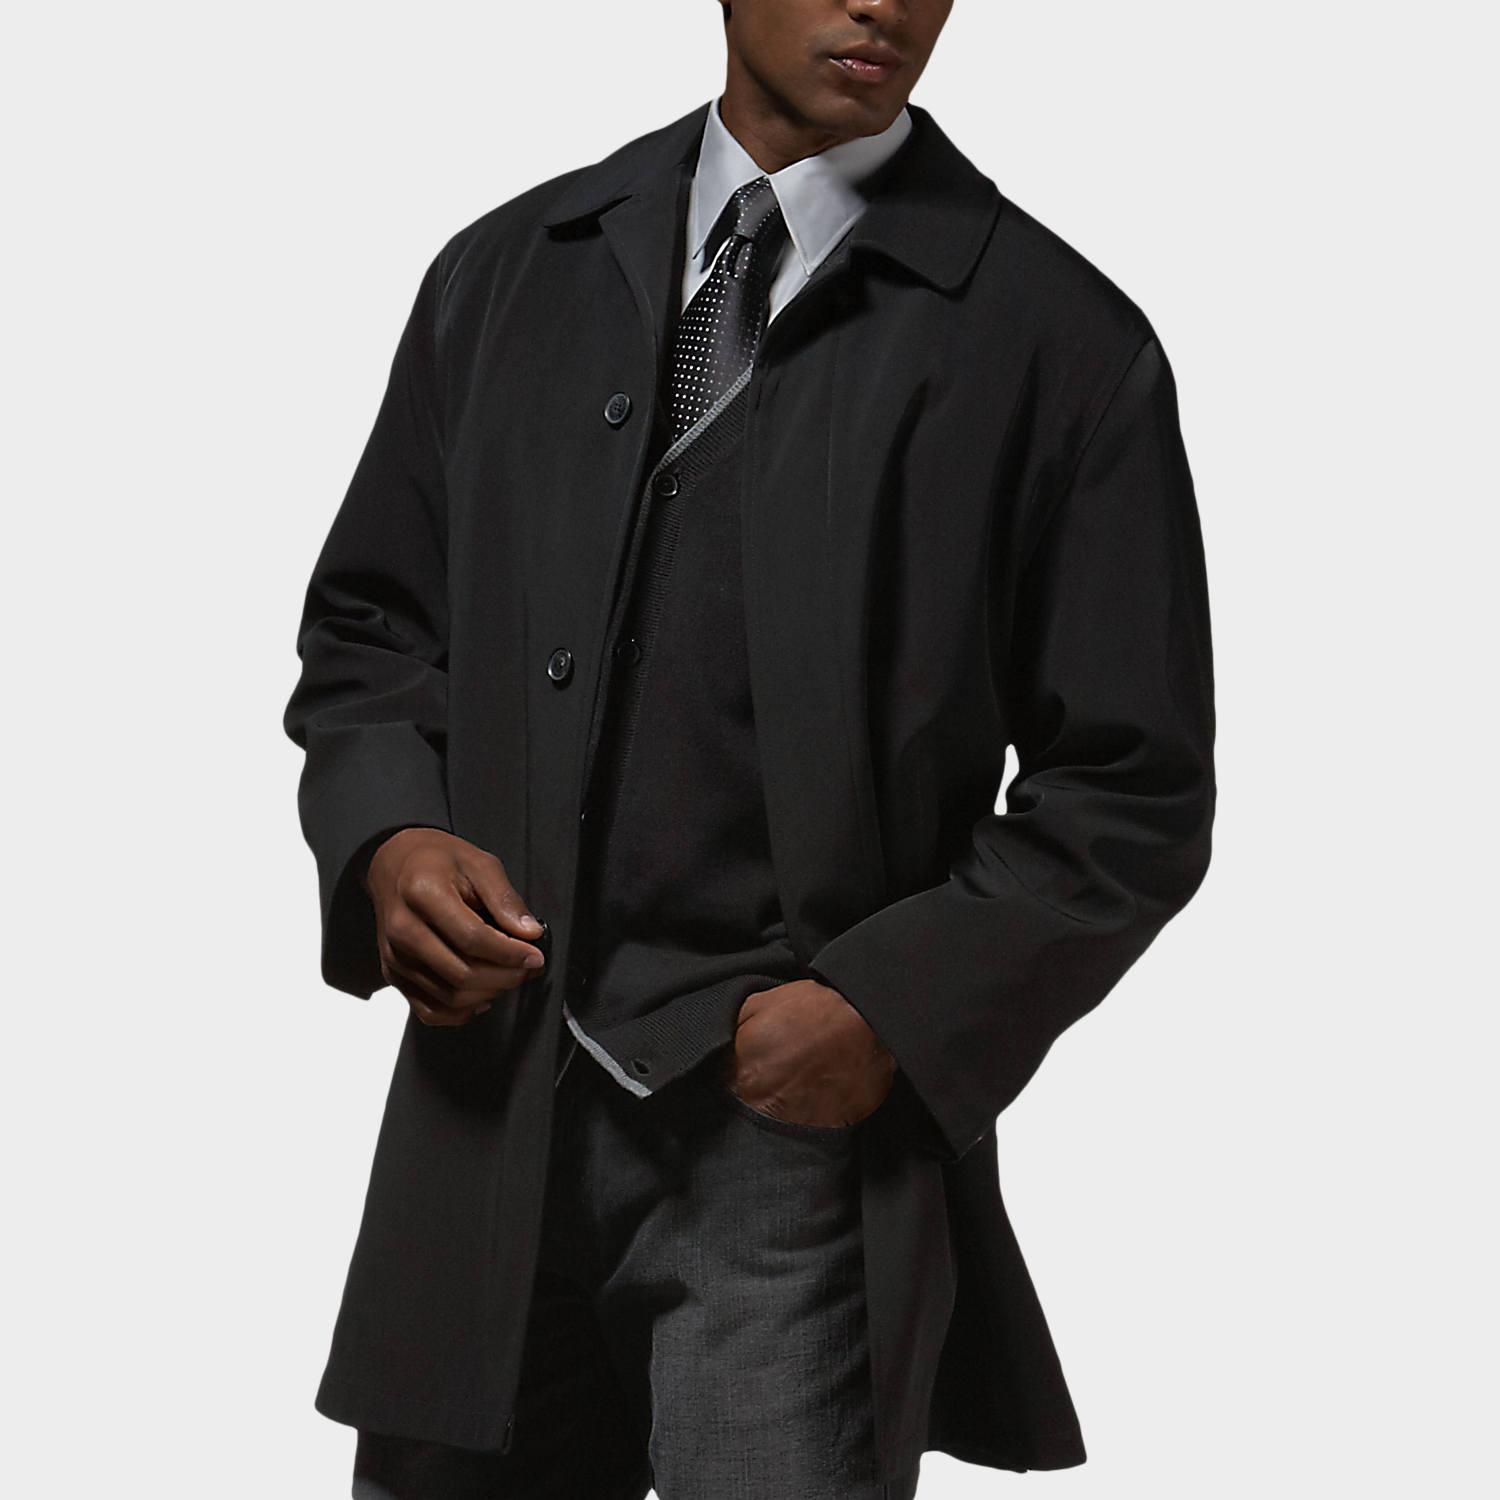 Trench Coats & Rain Coats for Men | Men's Wearhouse